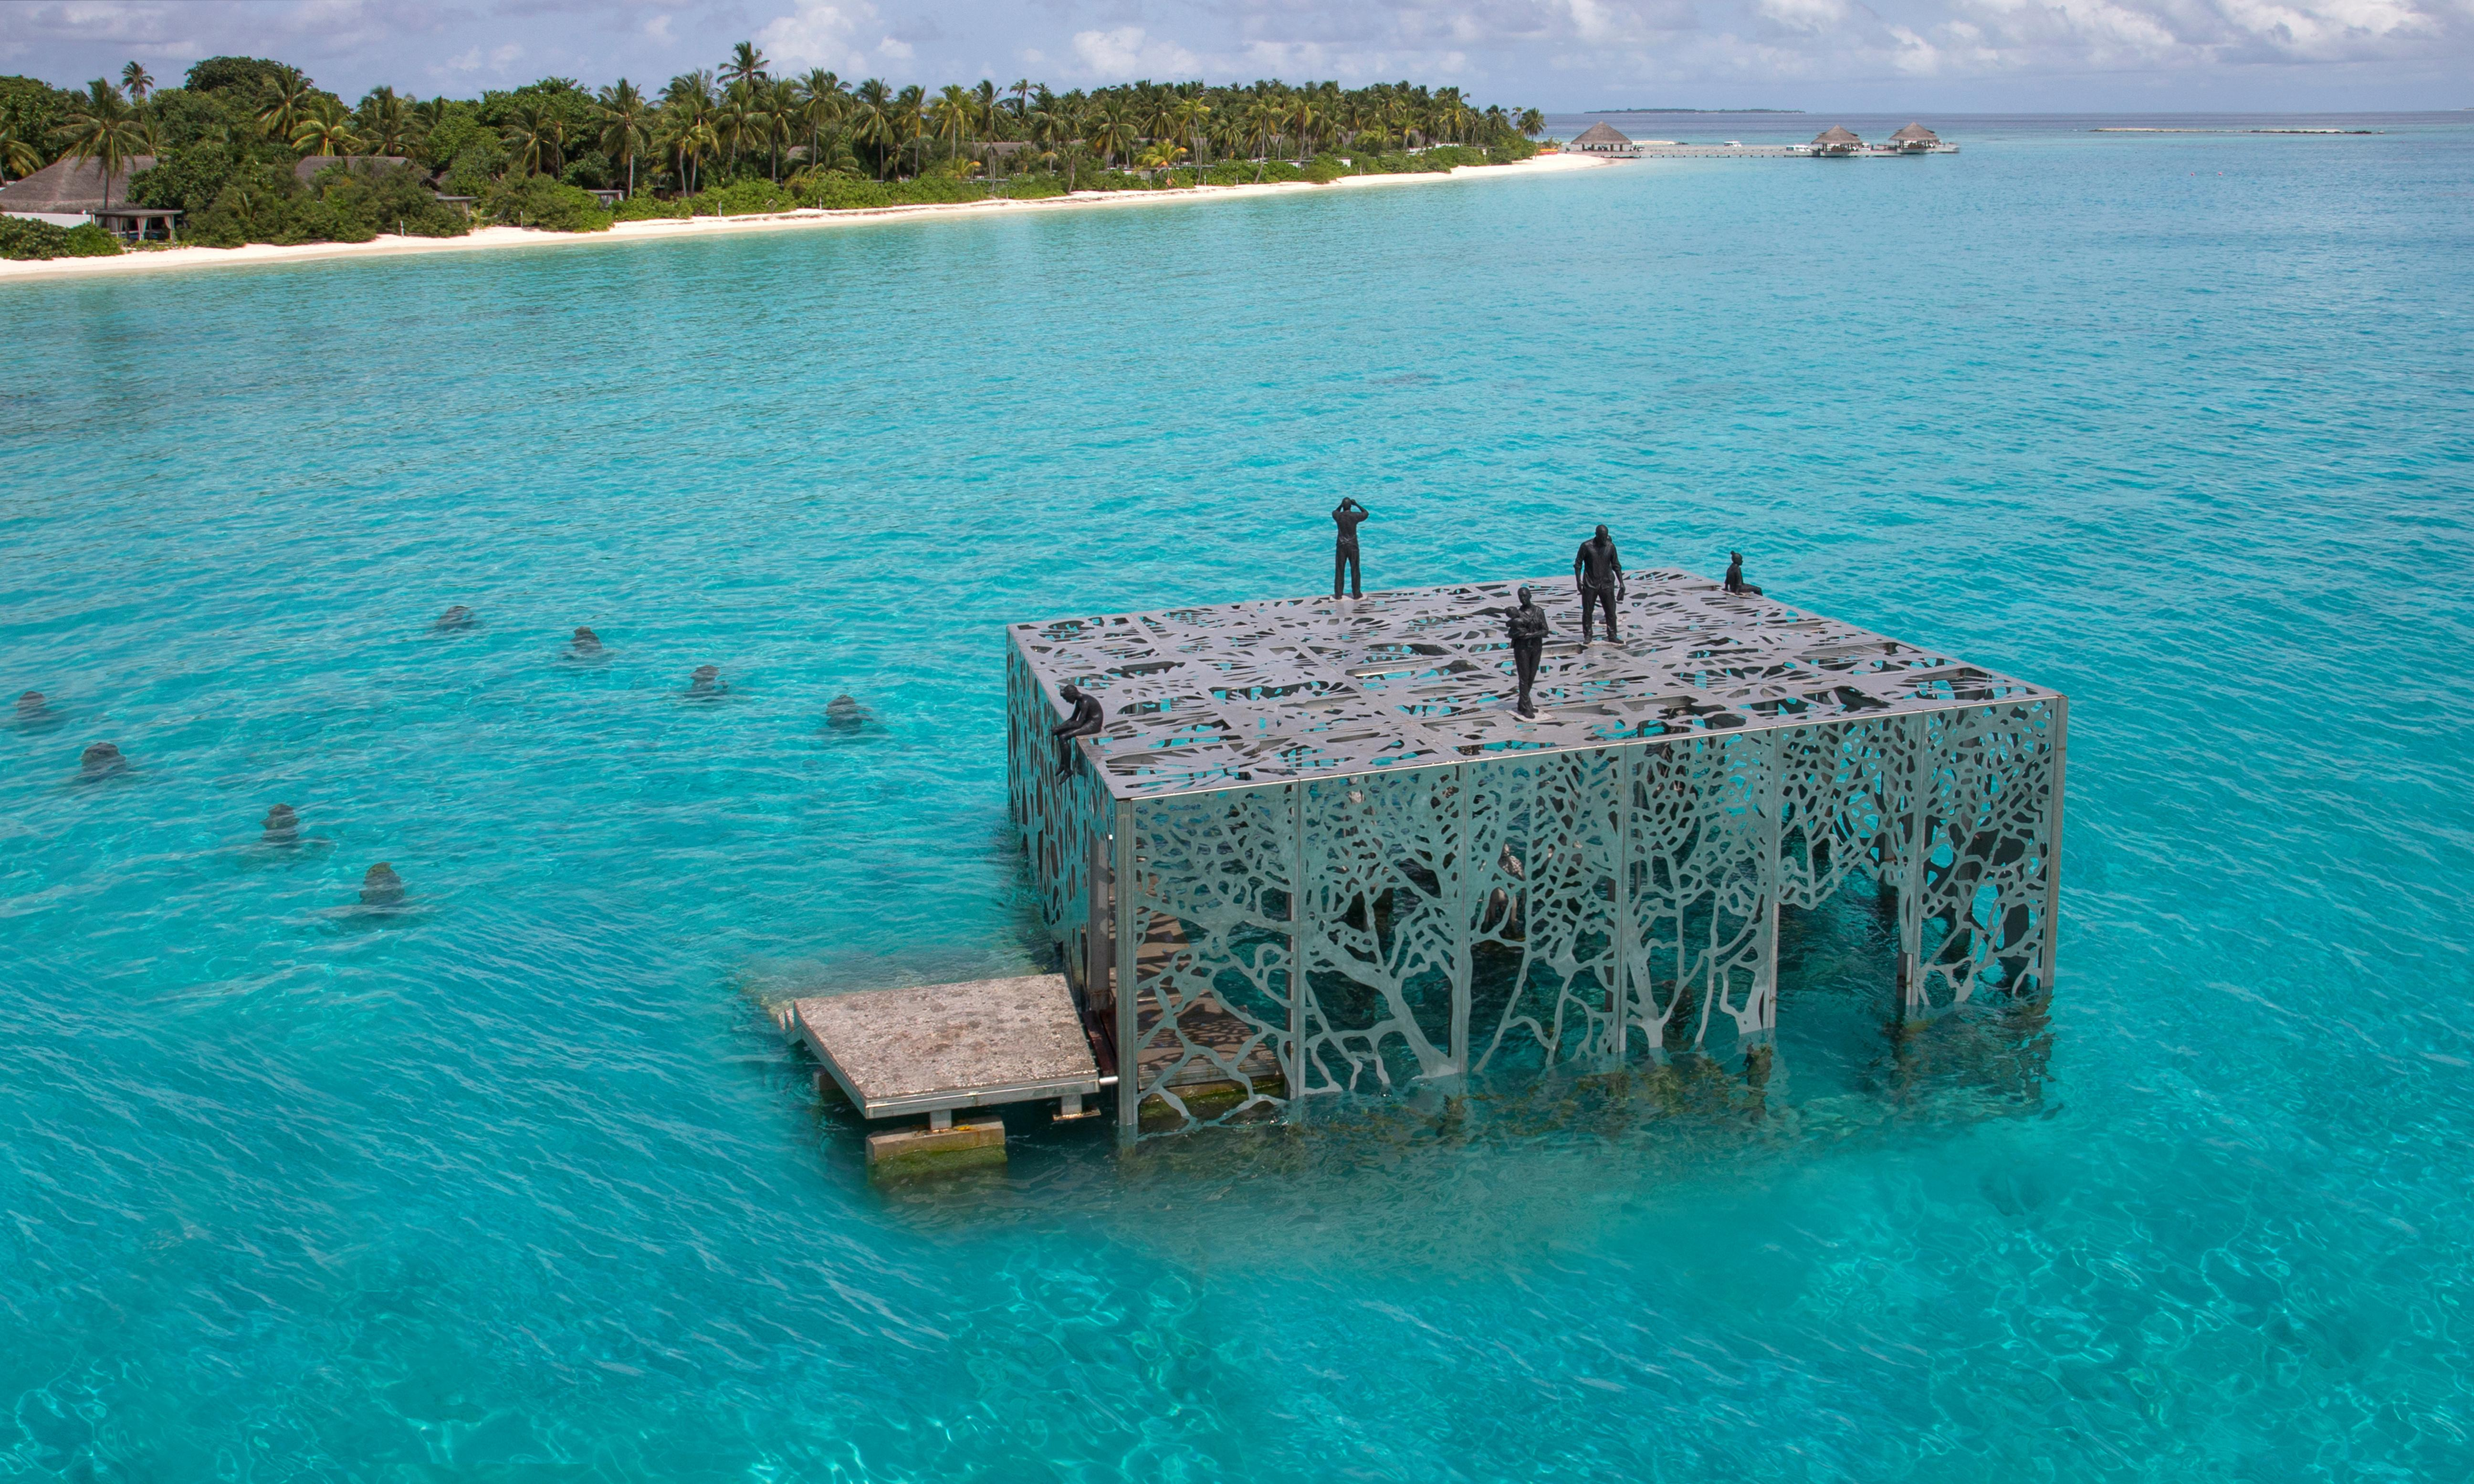 Maldives marine artwork destroyed for being a 'threat to Islamic unity'